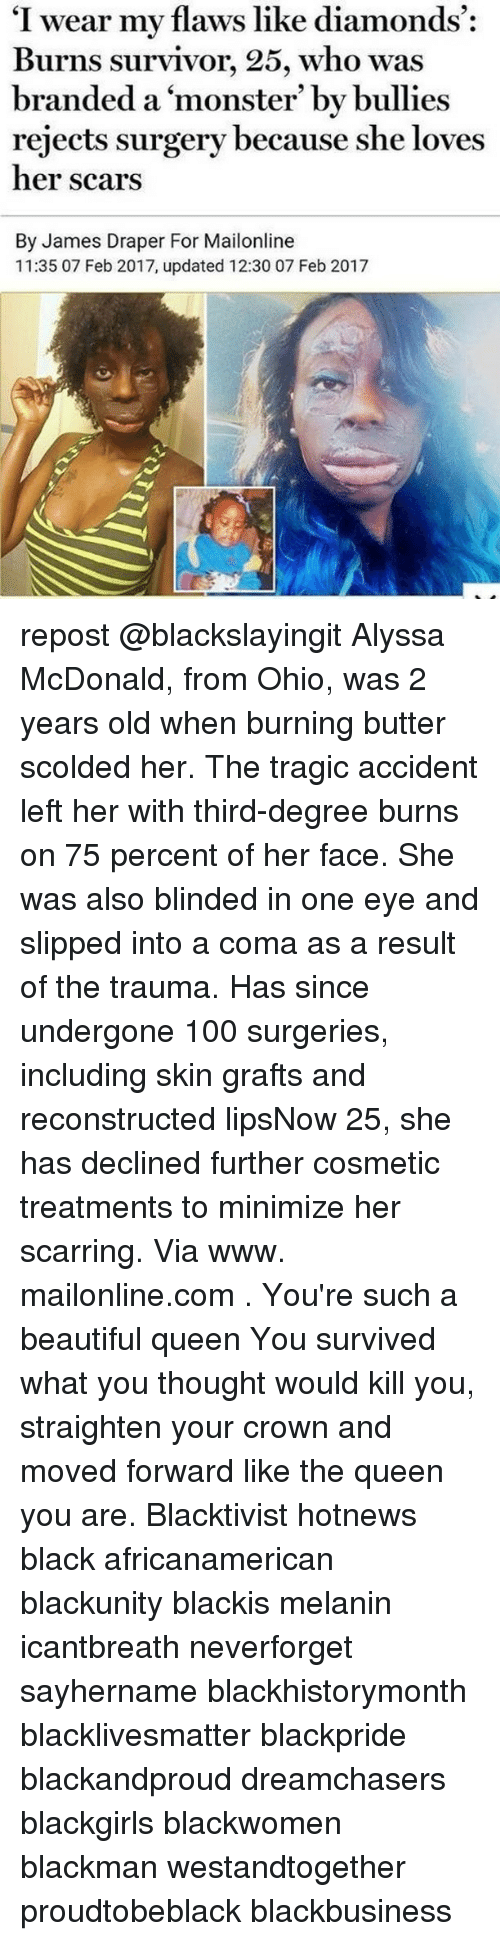 "survivalism: ""I wear my flaws like diamonds  Burns survivor, 25, who was  branded a monster' by bullies  rejects surgery because she loves  her scars  By James Draper For Mailonline  11:35 07 Feb 2017, updated 12:30 07 Feb 2017 repost @blackslayingit Alyssa McDonald, from Ohio, was 2 years old when burning butter scolded her. The tragic accident left her with third-degree burns on 75 percent of her face. She was also blinded in one eye and slipped into a coma as a result of the trauma. Has since undergone 100 surgeries, including skin grafts and reconstructed lipsNow 25, she has declined further cosmetic treatments to minimize her scarring. Via www. mailonline.com . You're such a beautiful queen You survived what you thought would kill you, straighten your crown and moved forward like the queen you are. Blacktivist hotnews black africanamerican blackunity blackis melanin icantbreath neverforget sayhername blackhistorymonth blacklivesmatter blackpride blackandproud dreamchasers blackgirls blackwomen blackman westandtogether proudtobeblack blackbusiness"